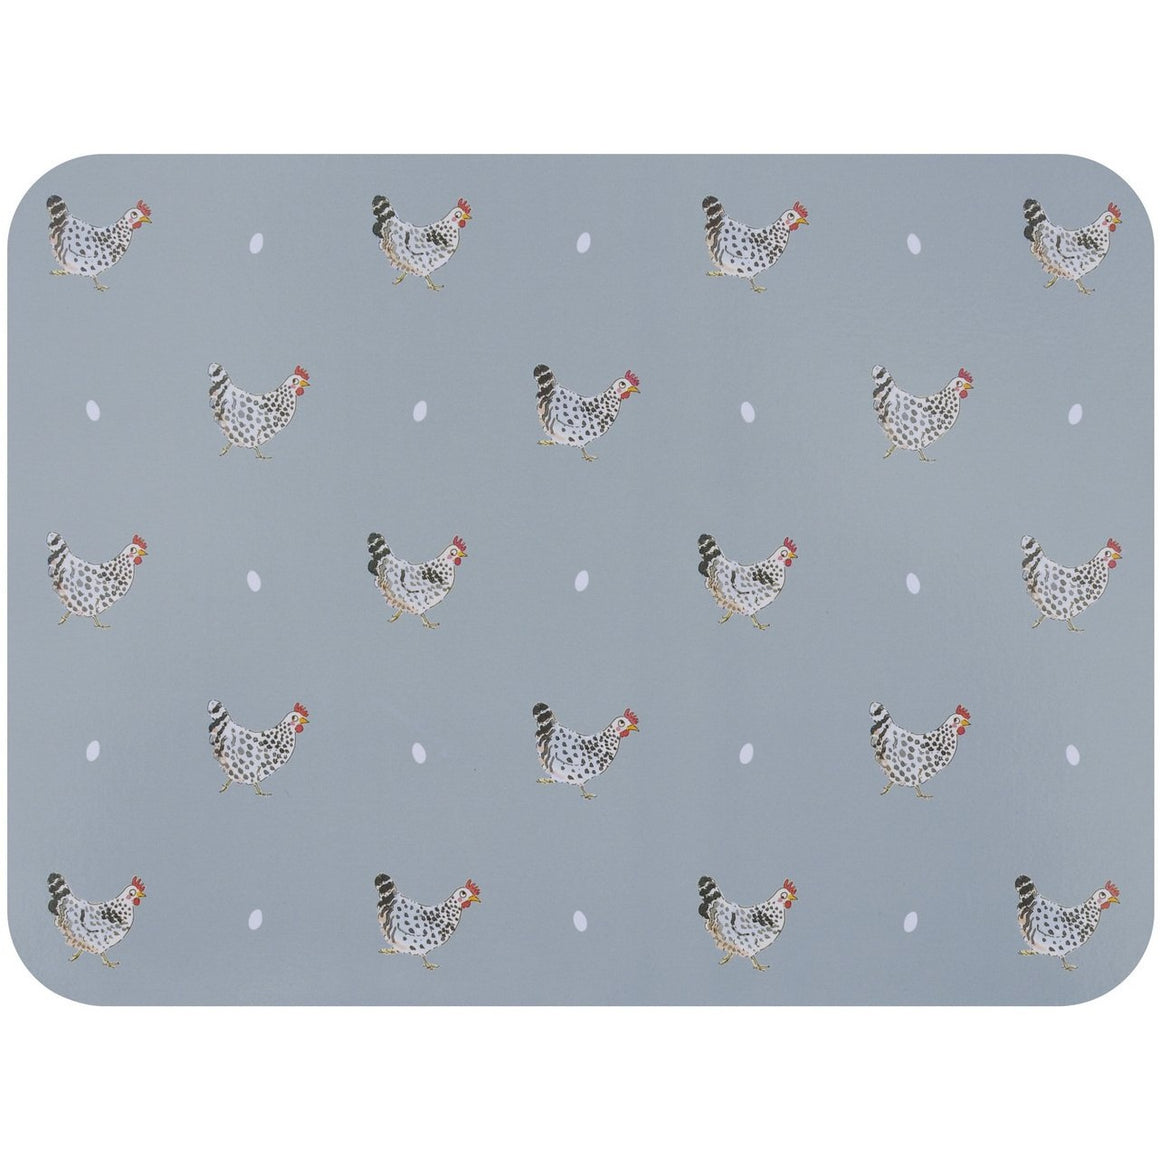 Sophie Allport Chicken Placemat Set